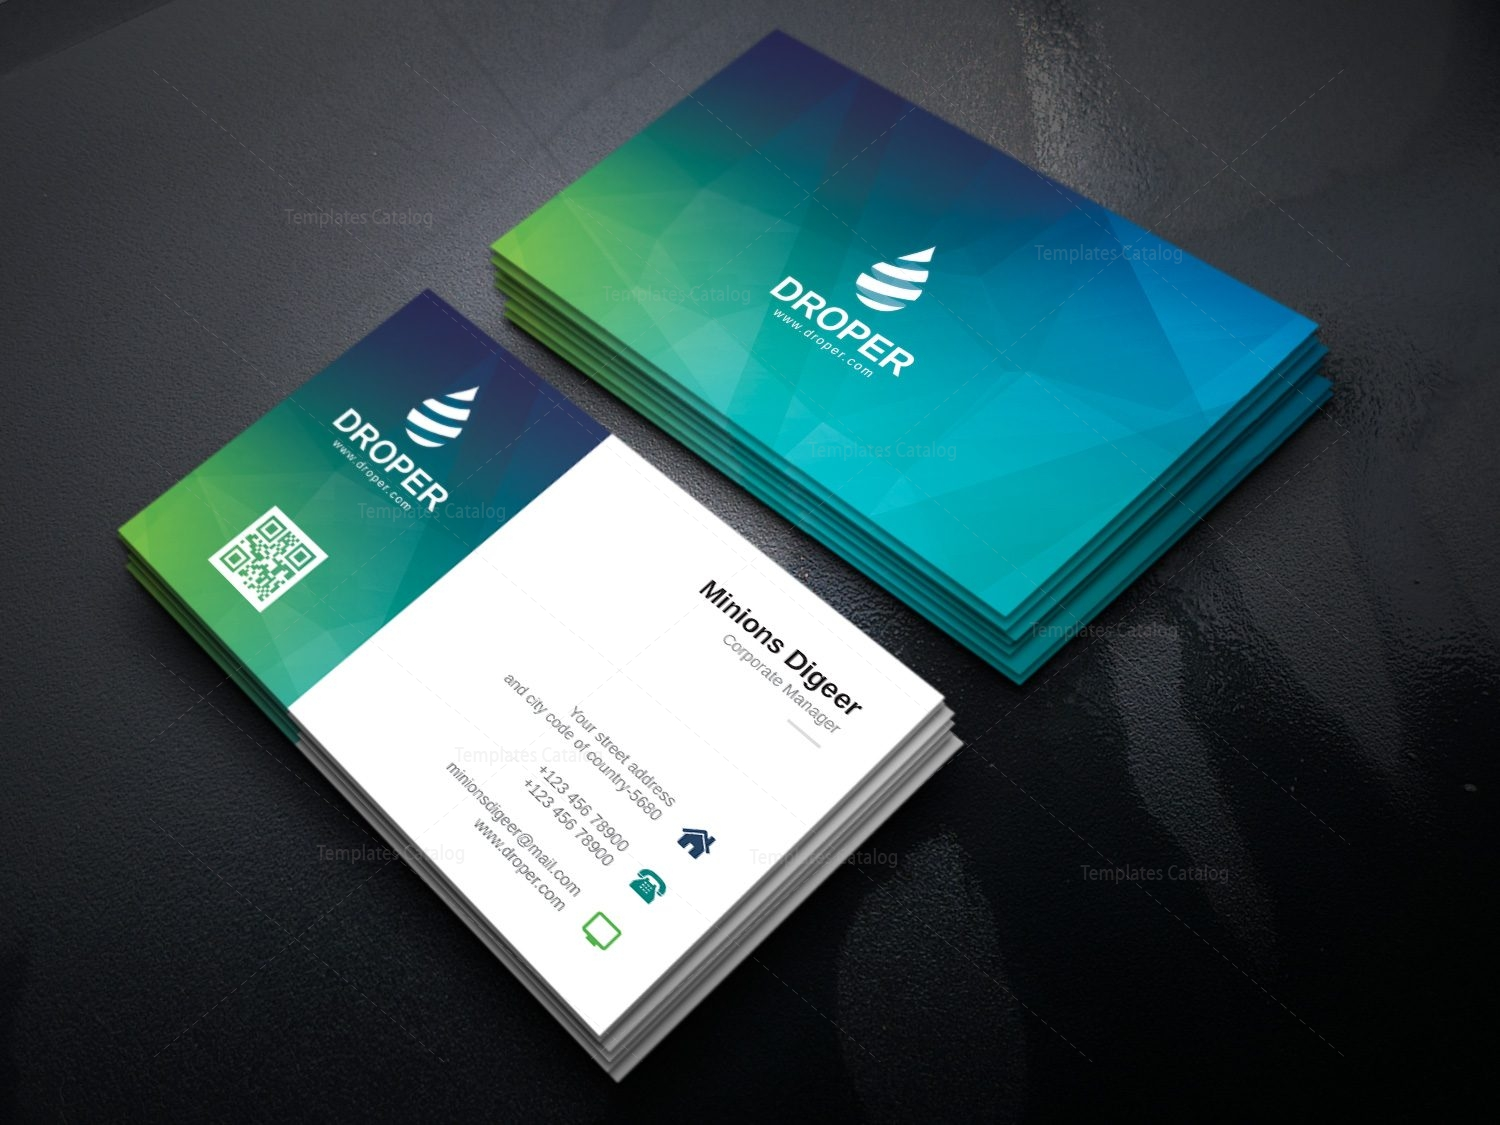 Dolphin Modern Corporate Business Card Template 000924 - Template Catalog